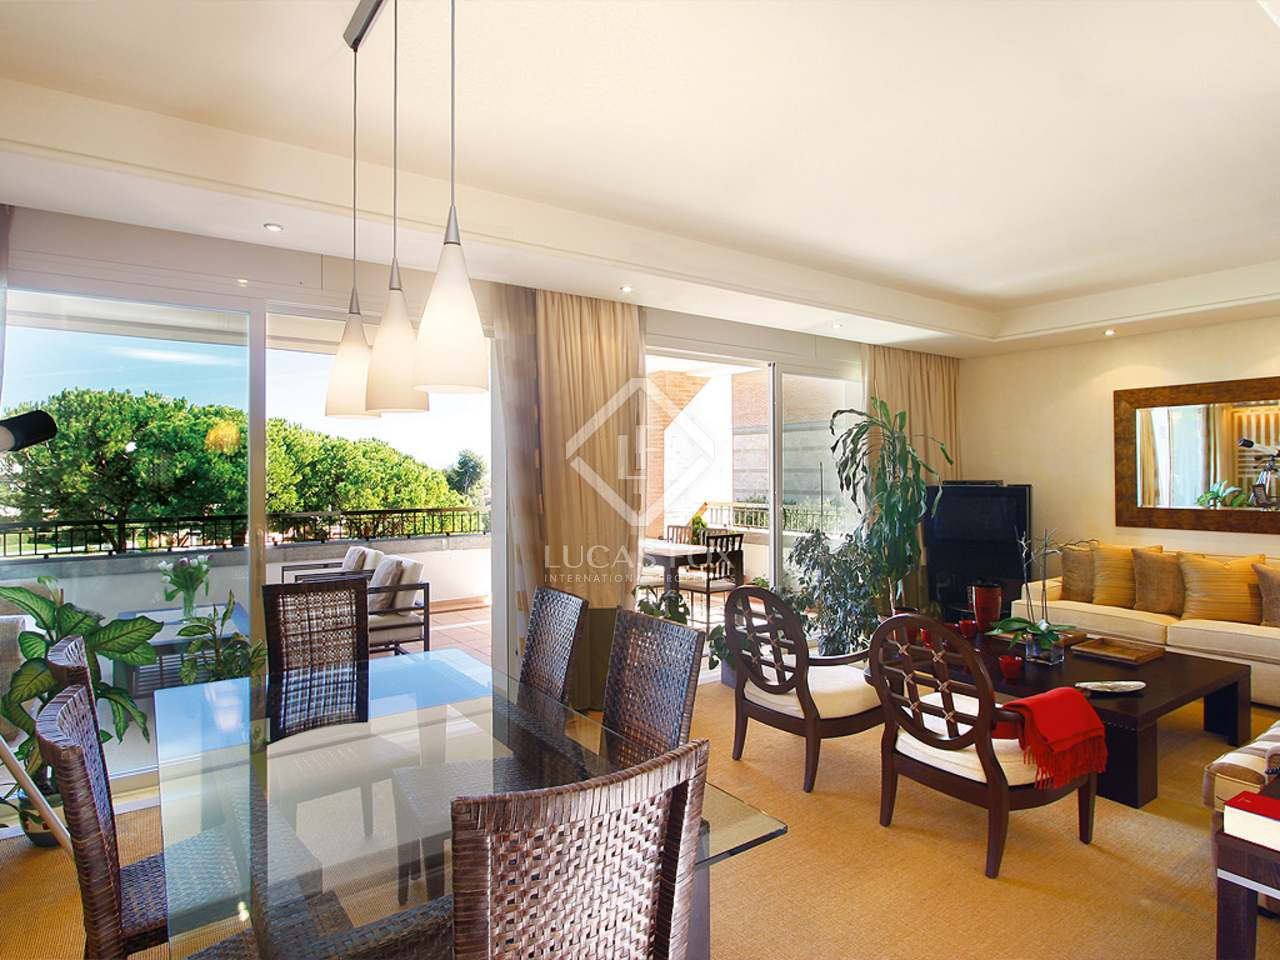 Lounge - 3 Bed Apartment for sale, La Trinidad, Golden Mile, Marbella